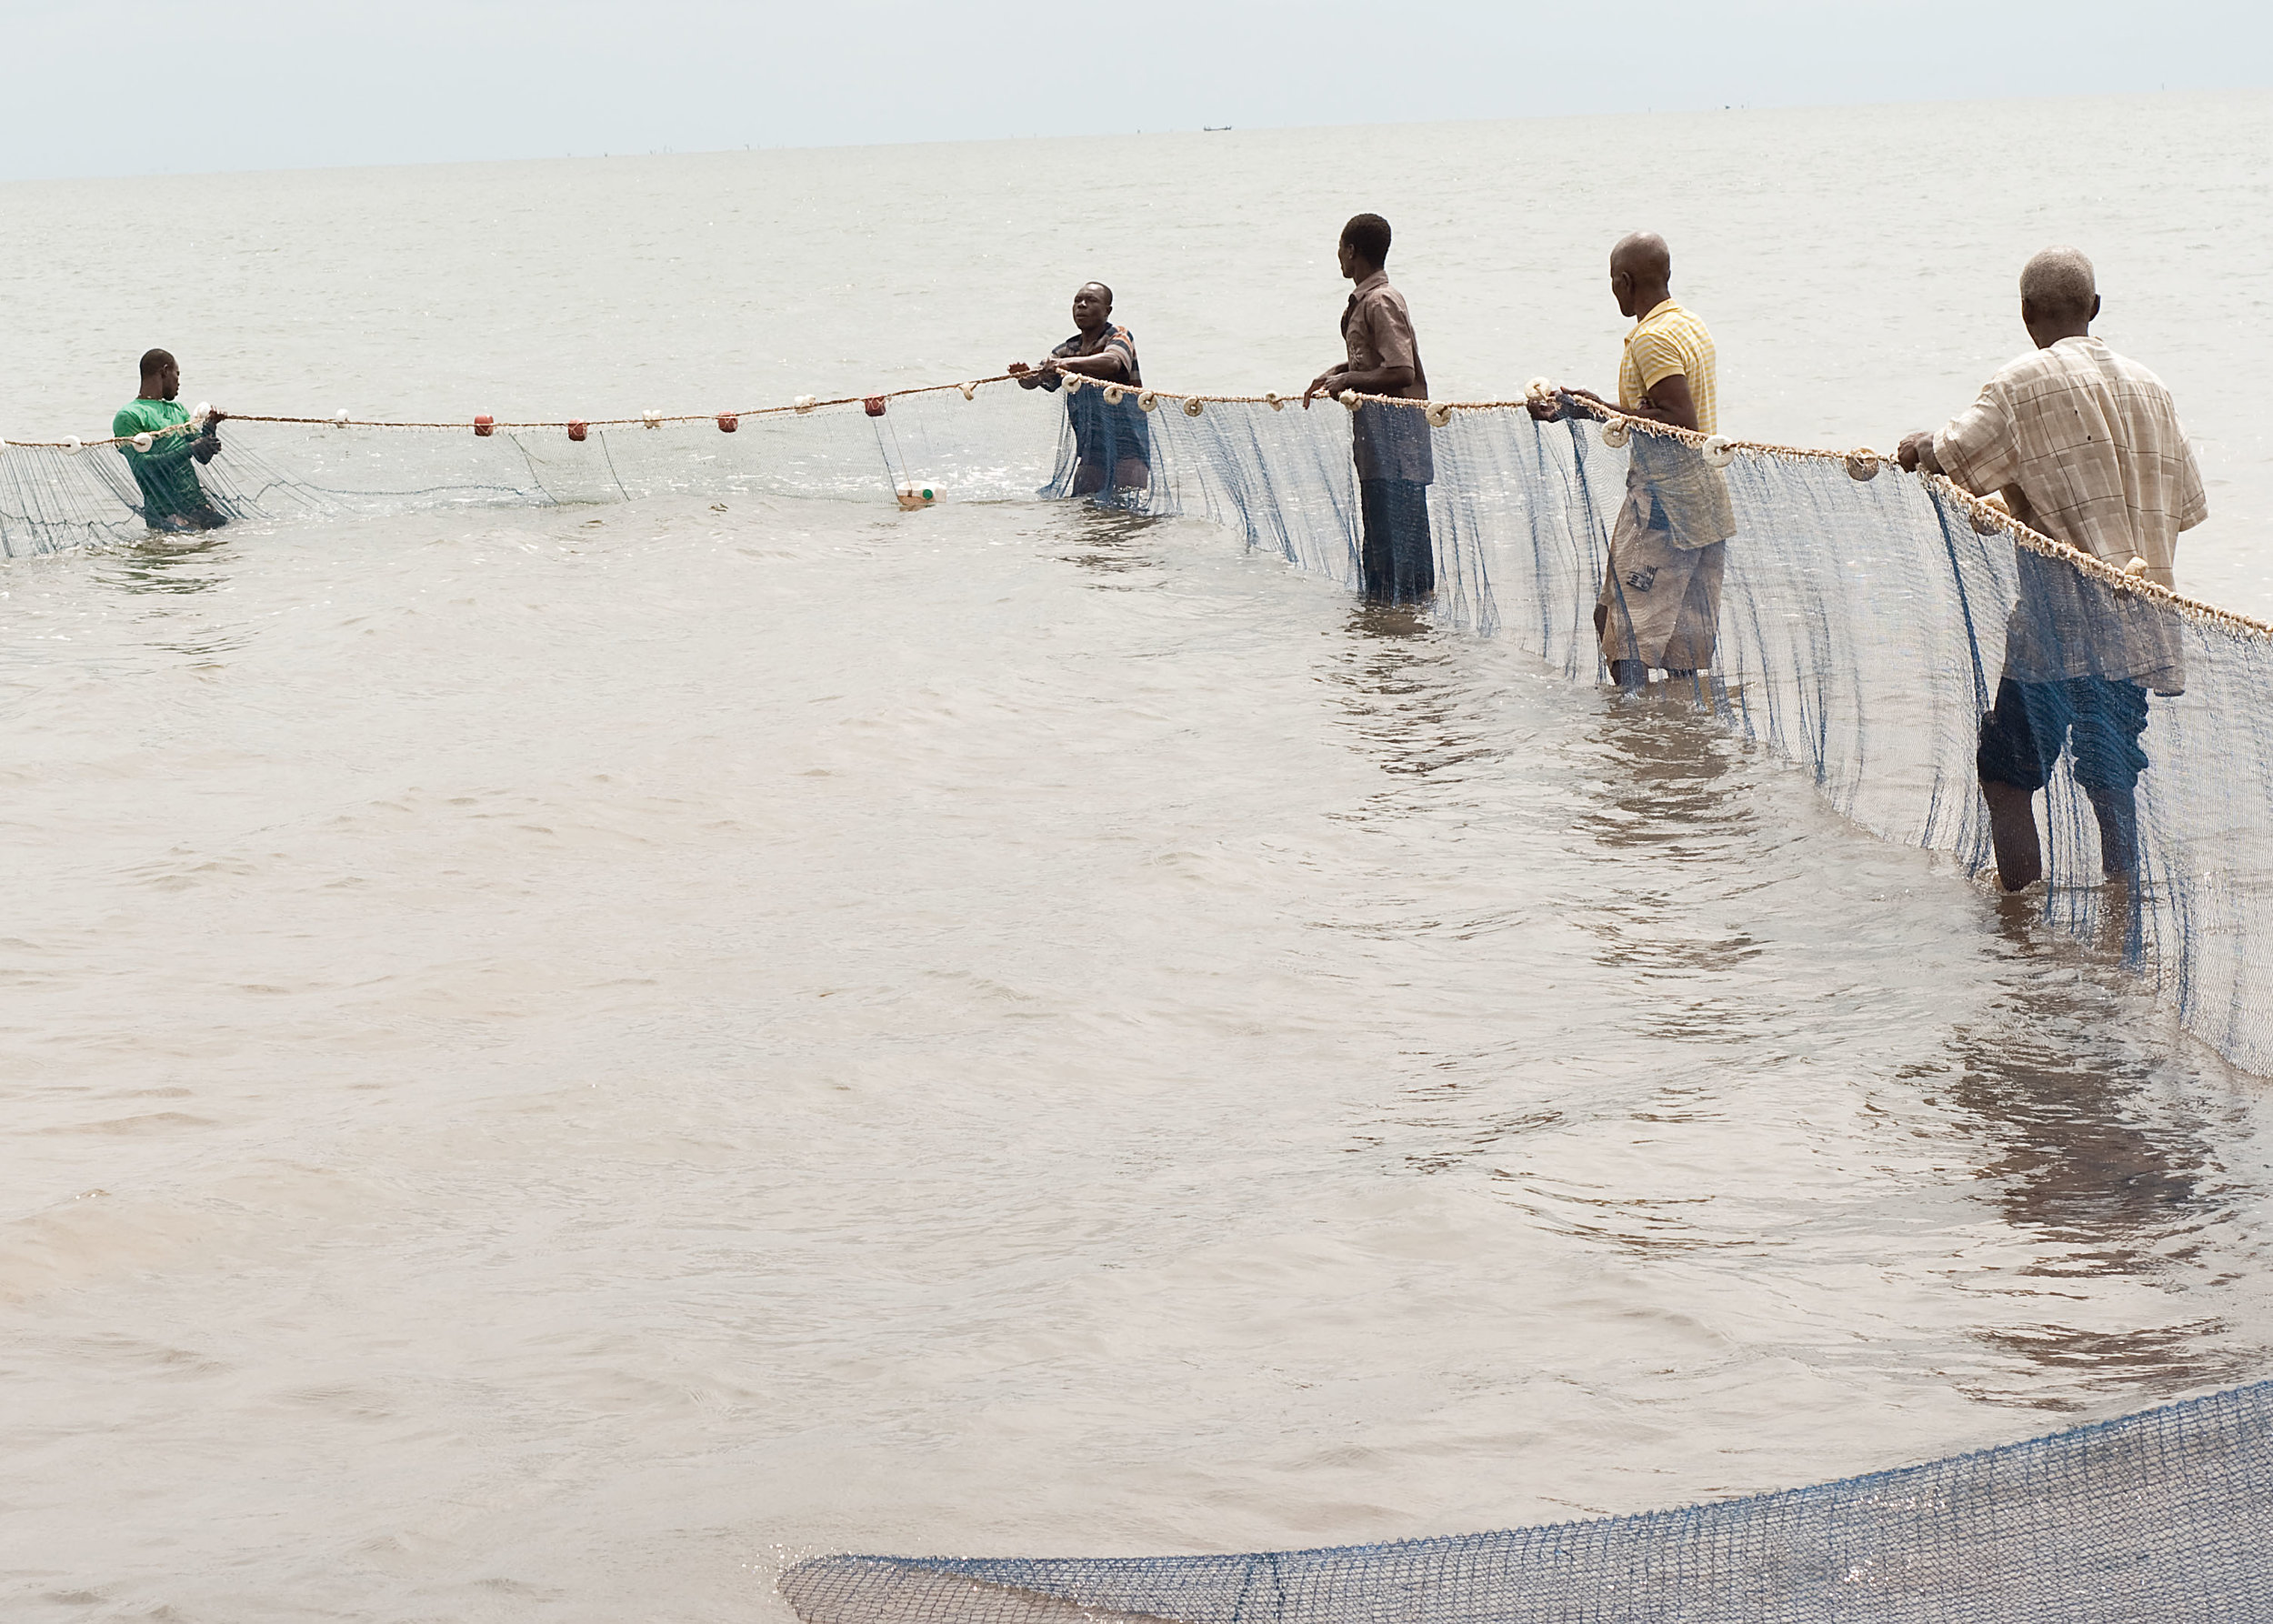 village fishermen pulling in nets